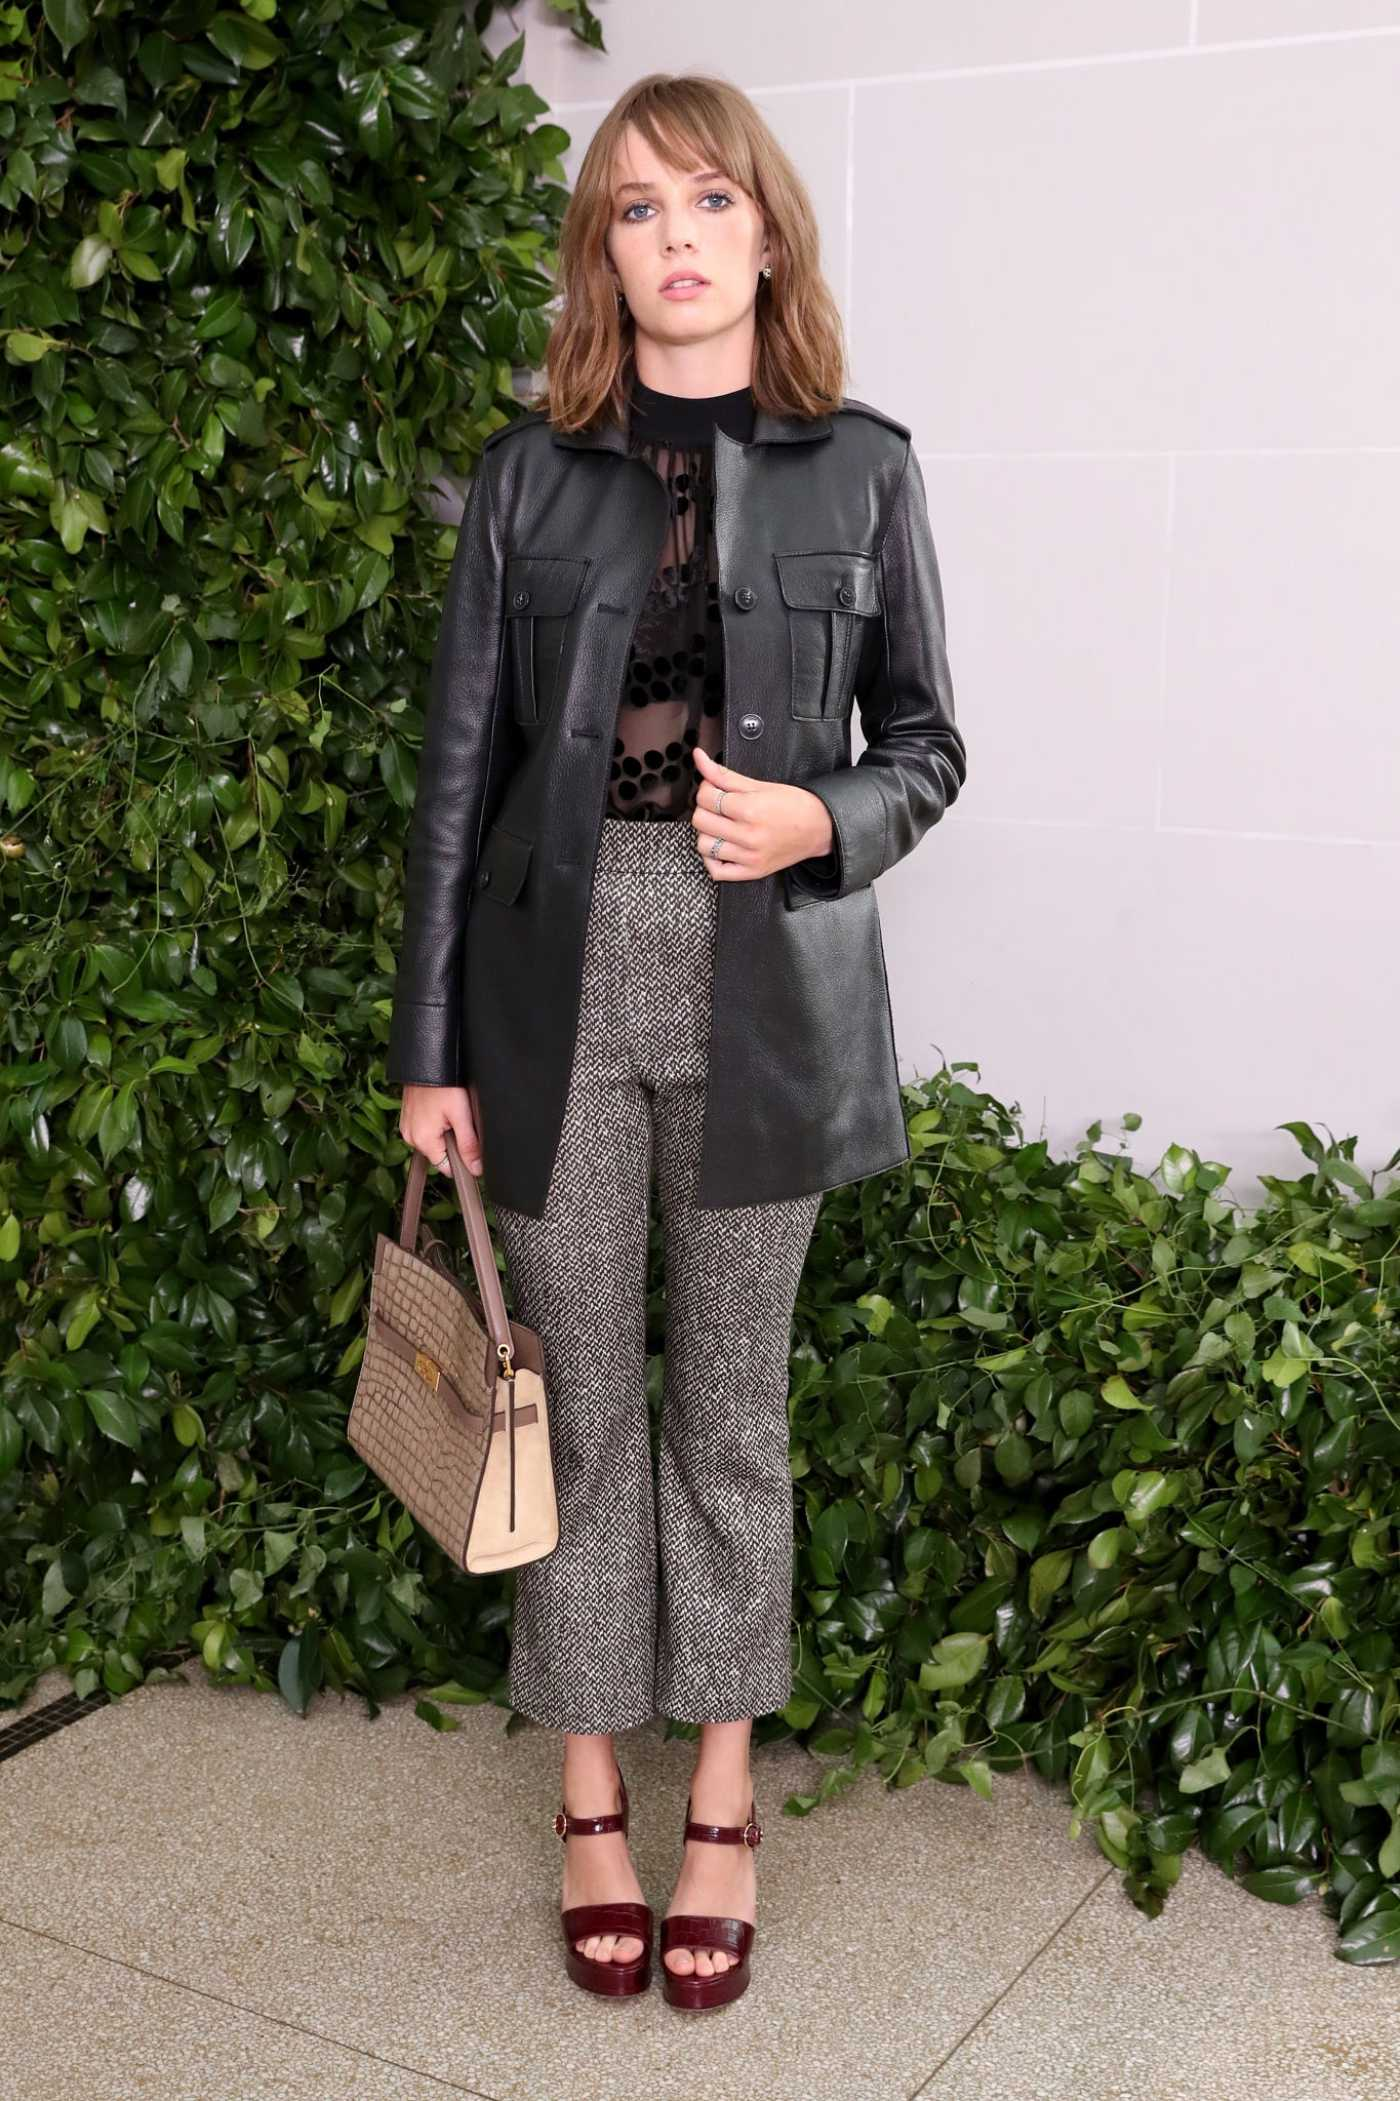 Maya Hawke Attends the Tory Burch Fashion Show During NYFW in New York 09/08/2019